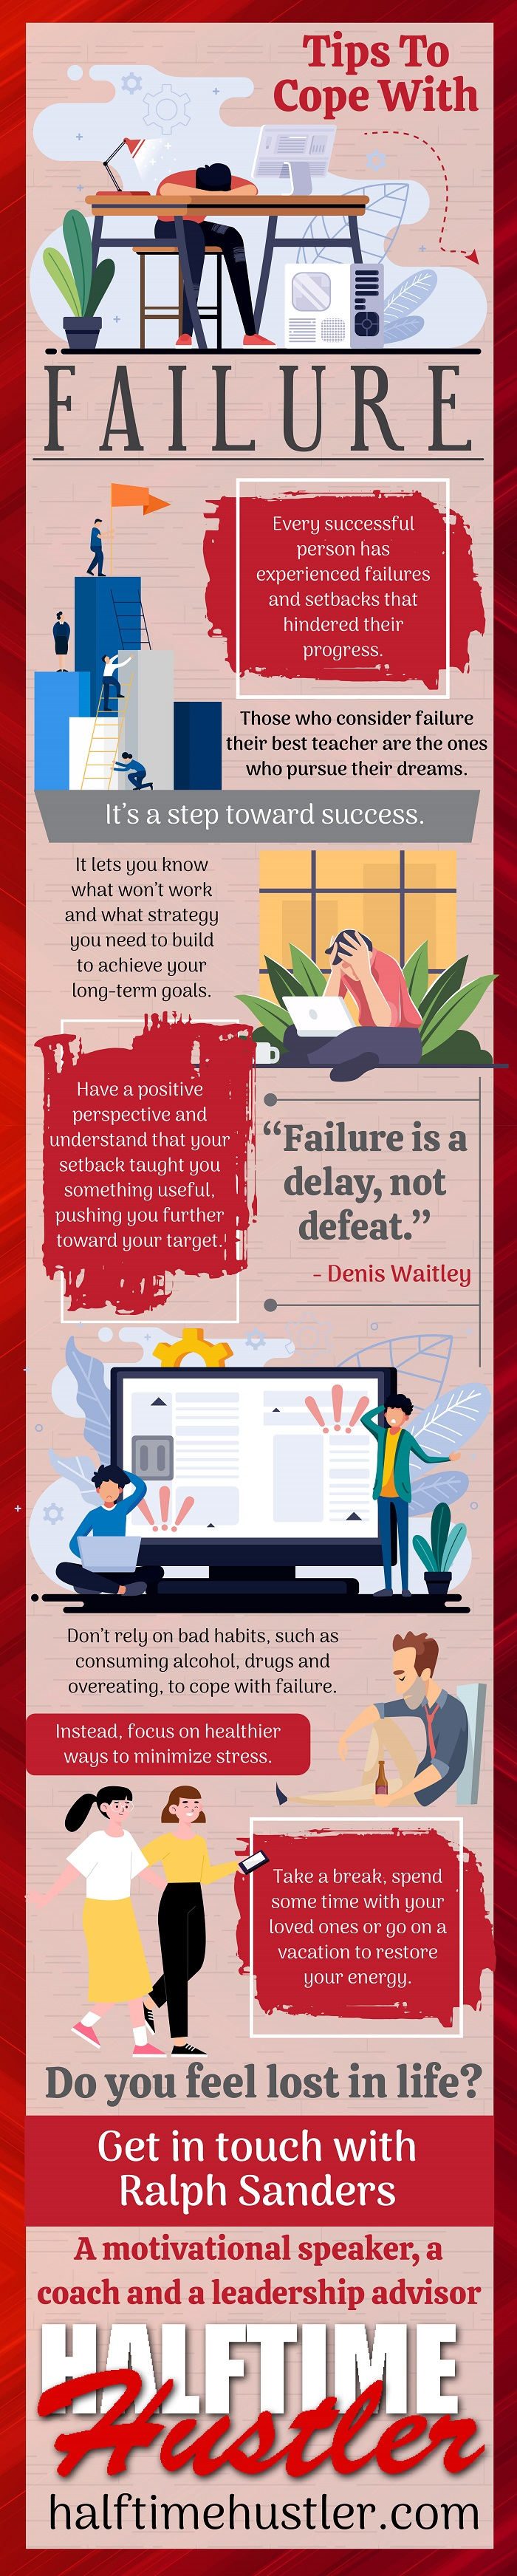 Tips To Cope With Failure